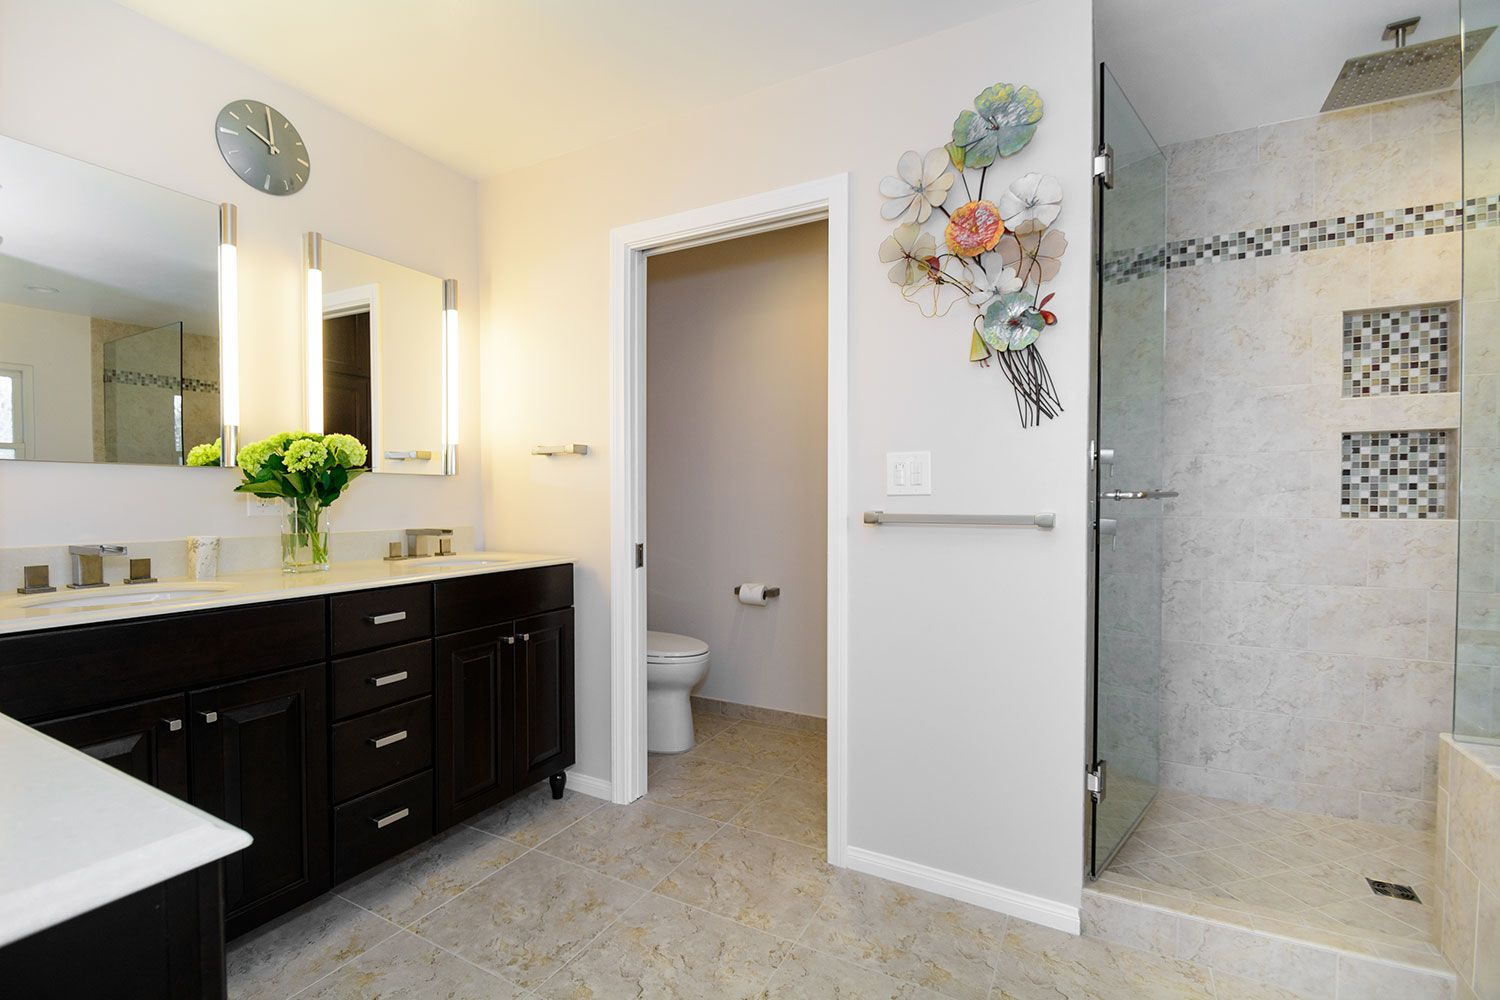 One Week Bath Featured Bathroom Design Gallery - Page 1 | Bathrooms ...